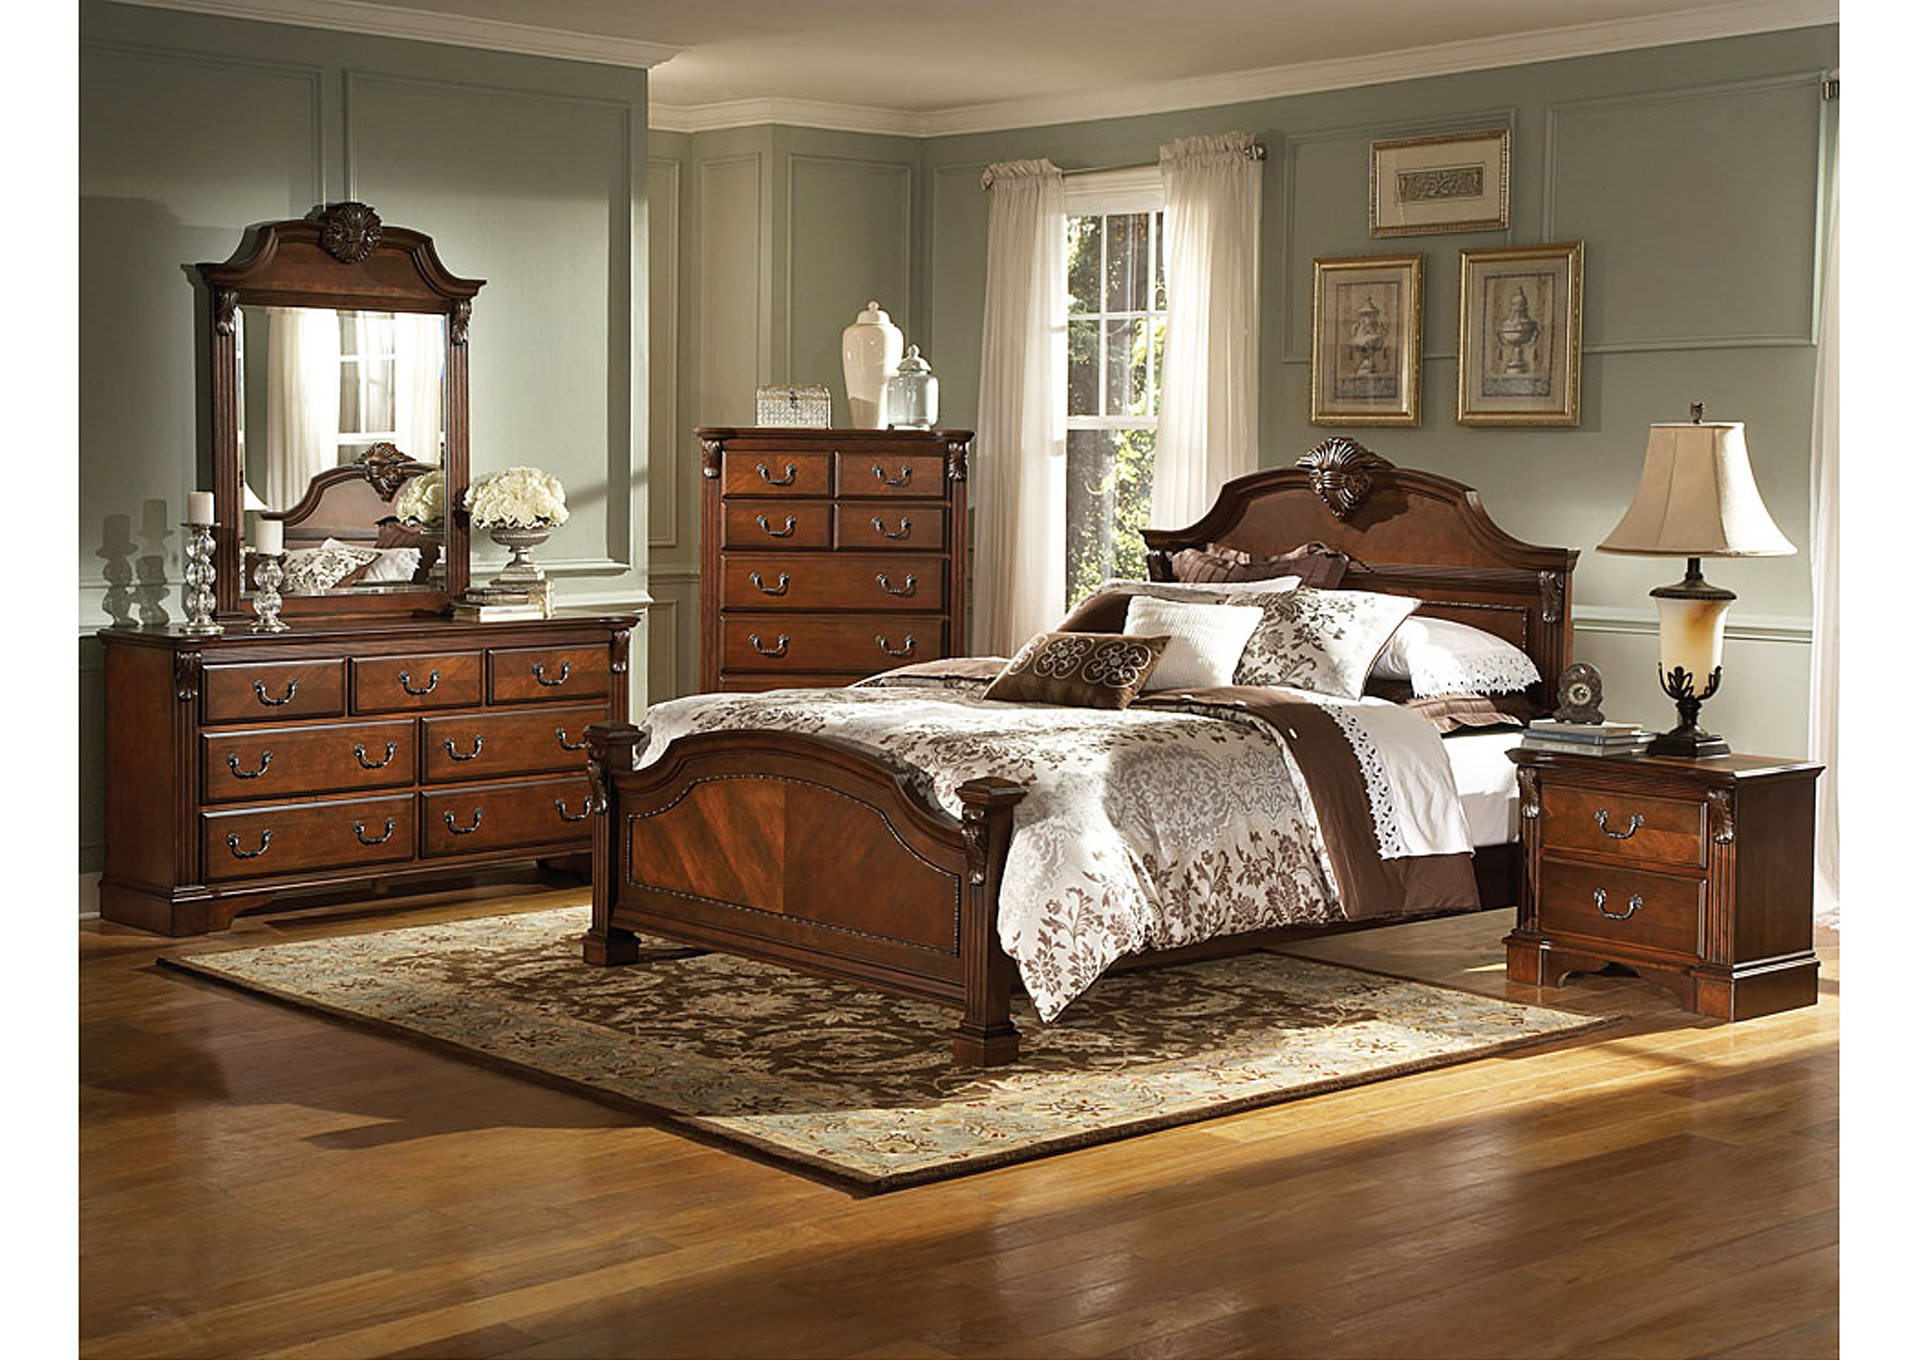 Legacy Full Panel Bed,Homelegance